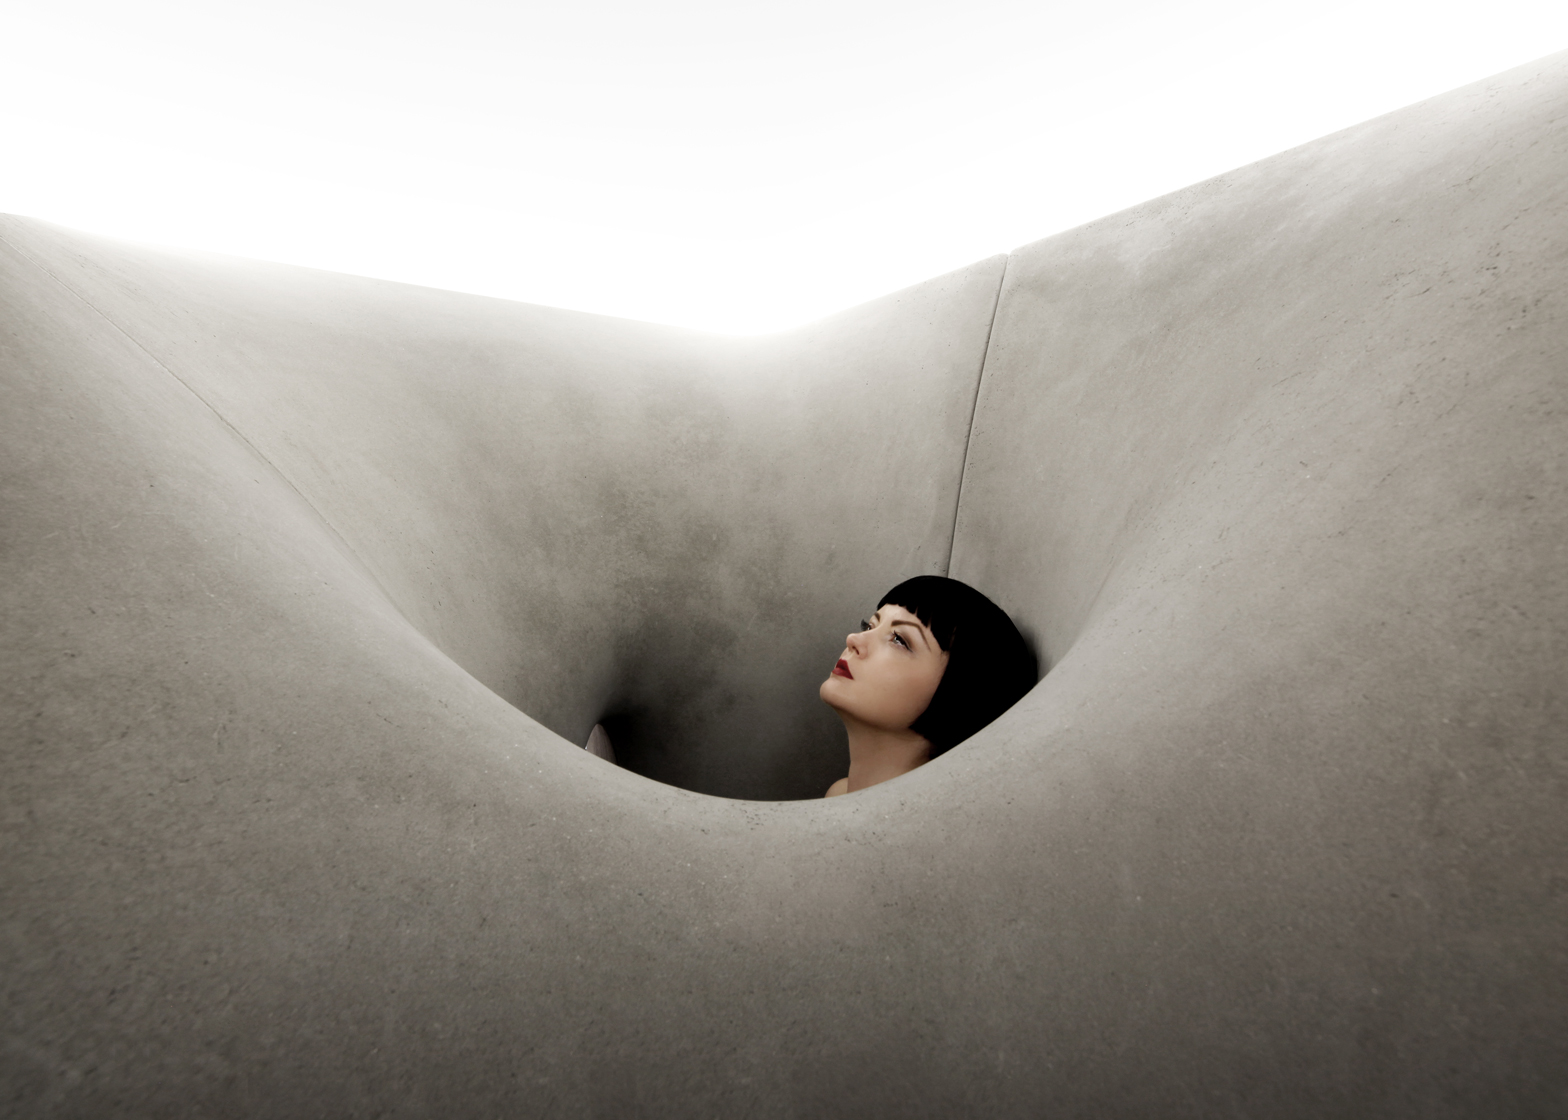 The sculptural walls of Matter Design's Microtherme acted like a concrete sauna